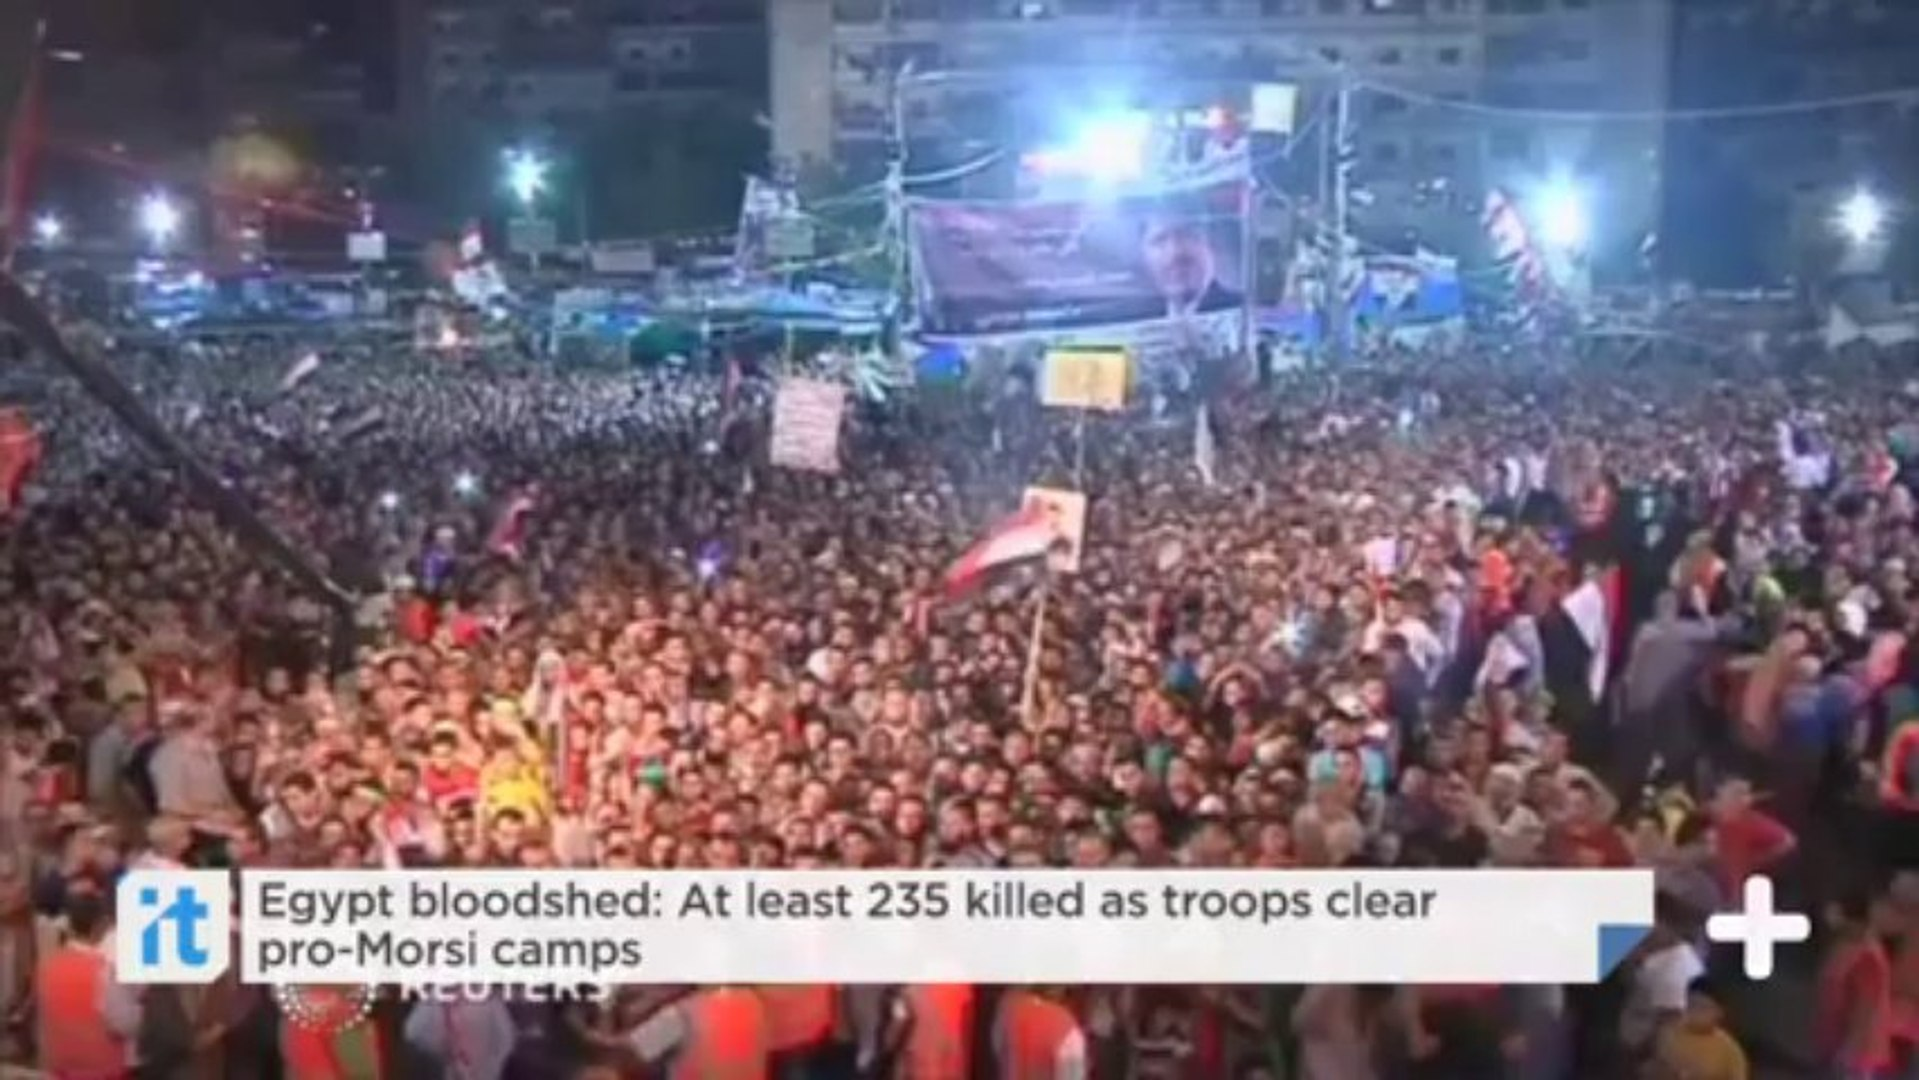 Egypt bloodshed: At least 235 killed as troops clear pro-Morsi camps